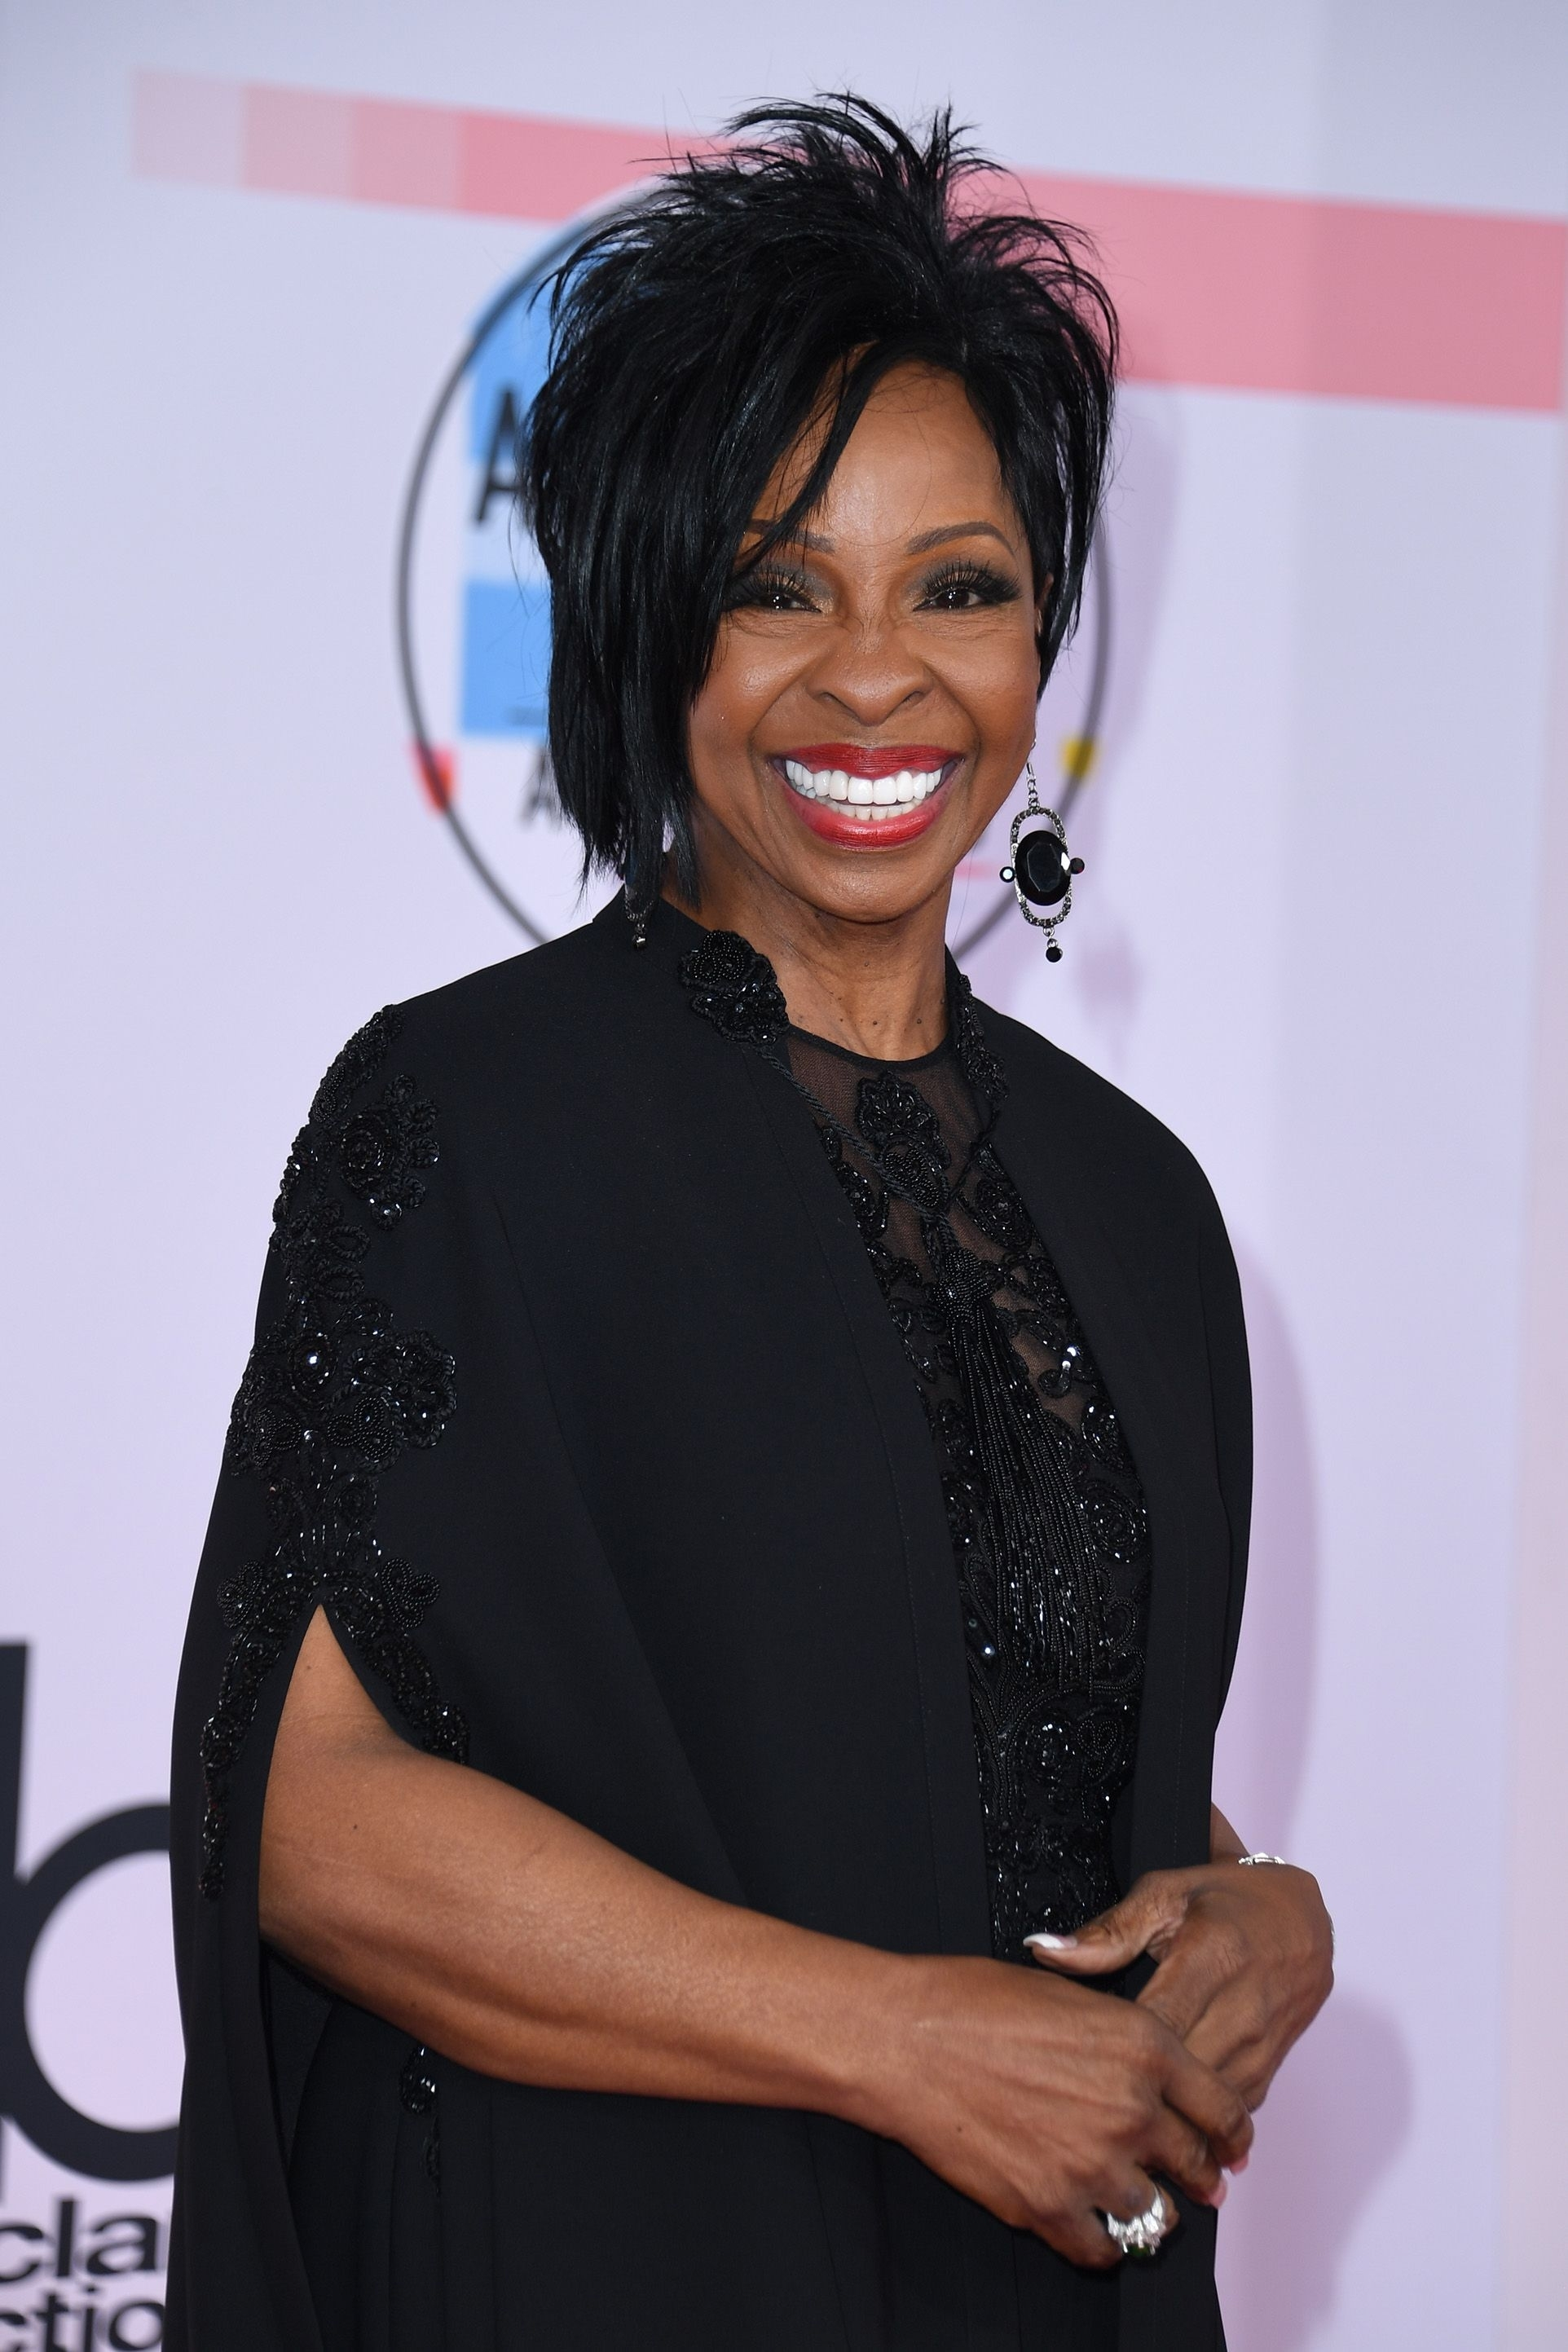 Gladys Knight To Sing At Super Bowl in Gladys Knight Super Bowl